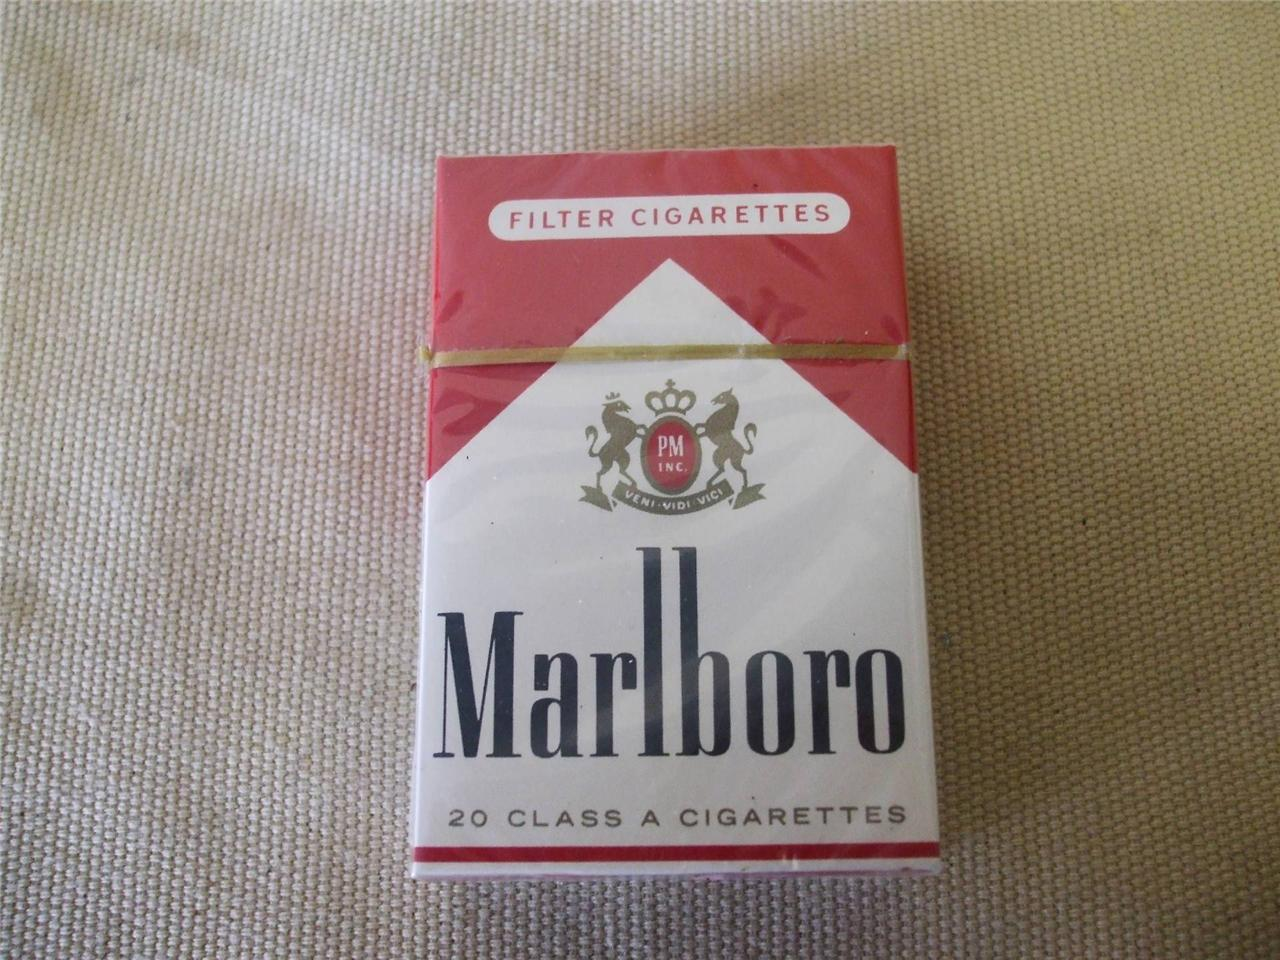 Buying cigarettes Marlboro Ontario age